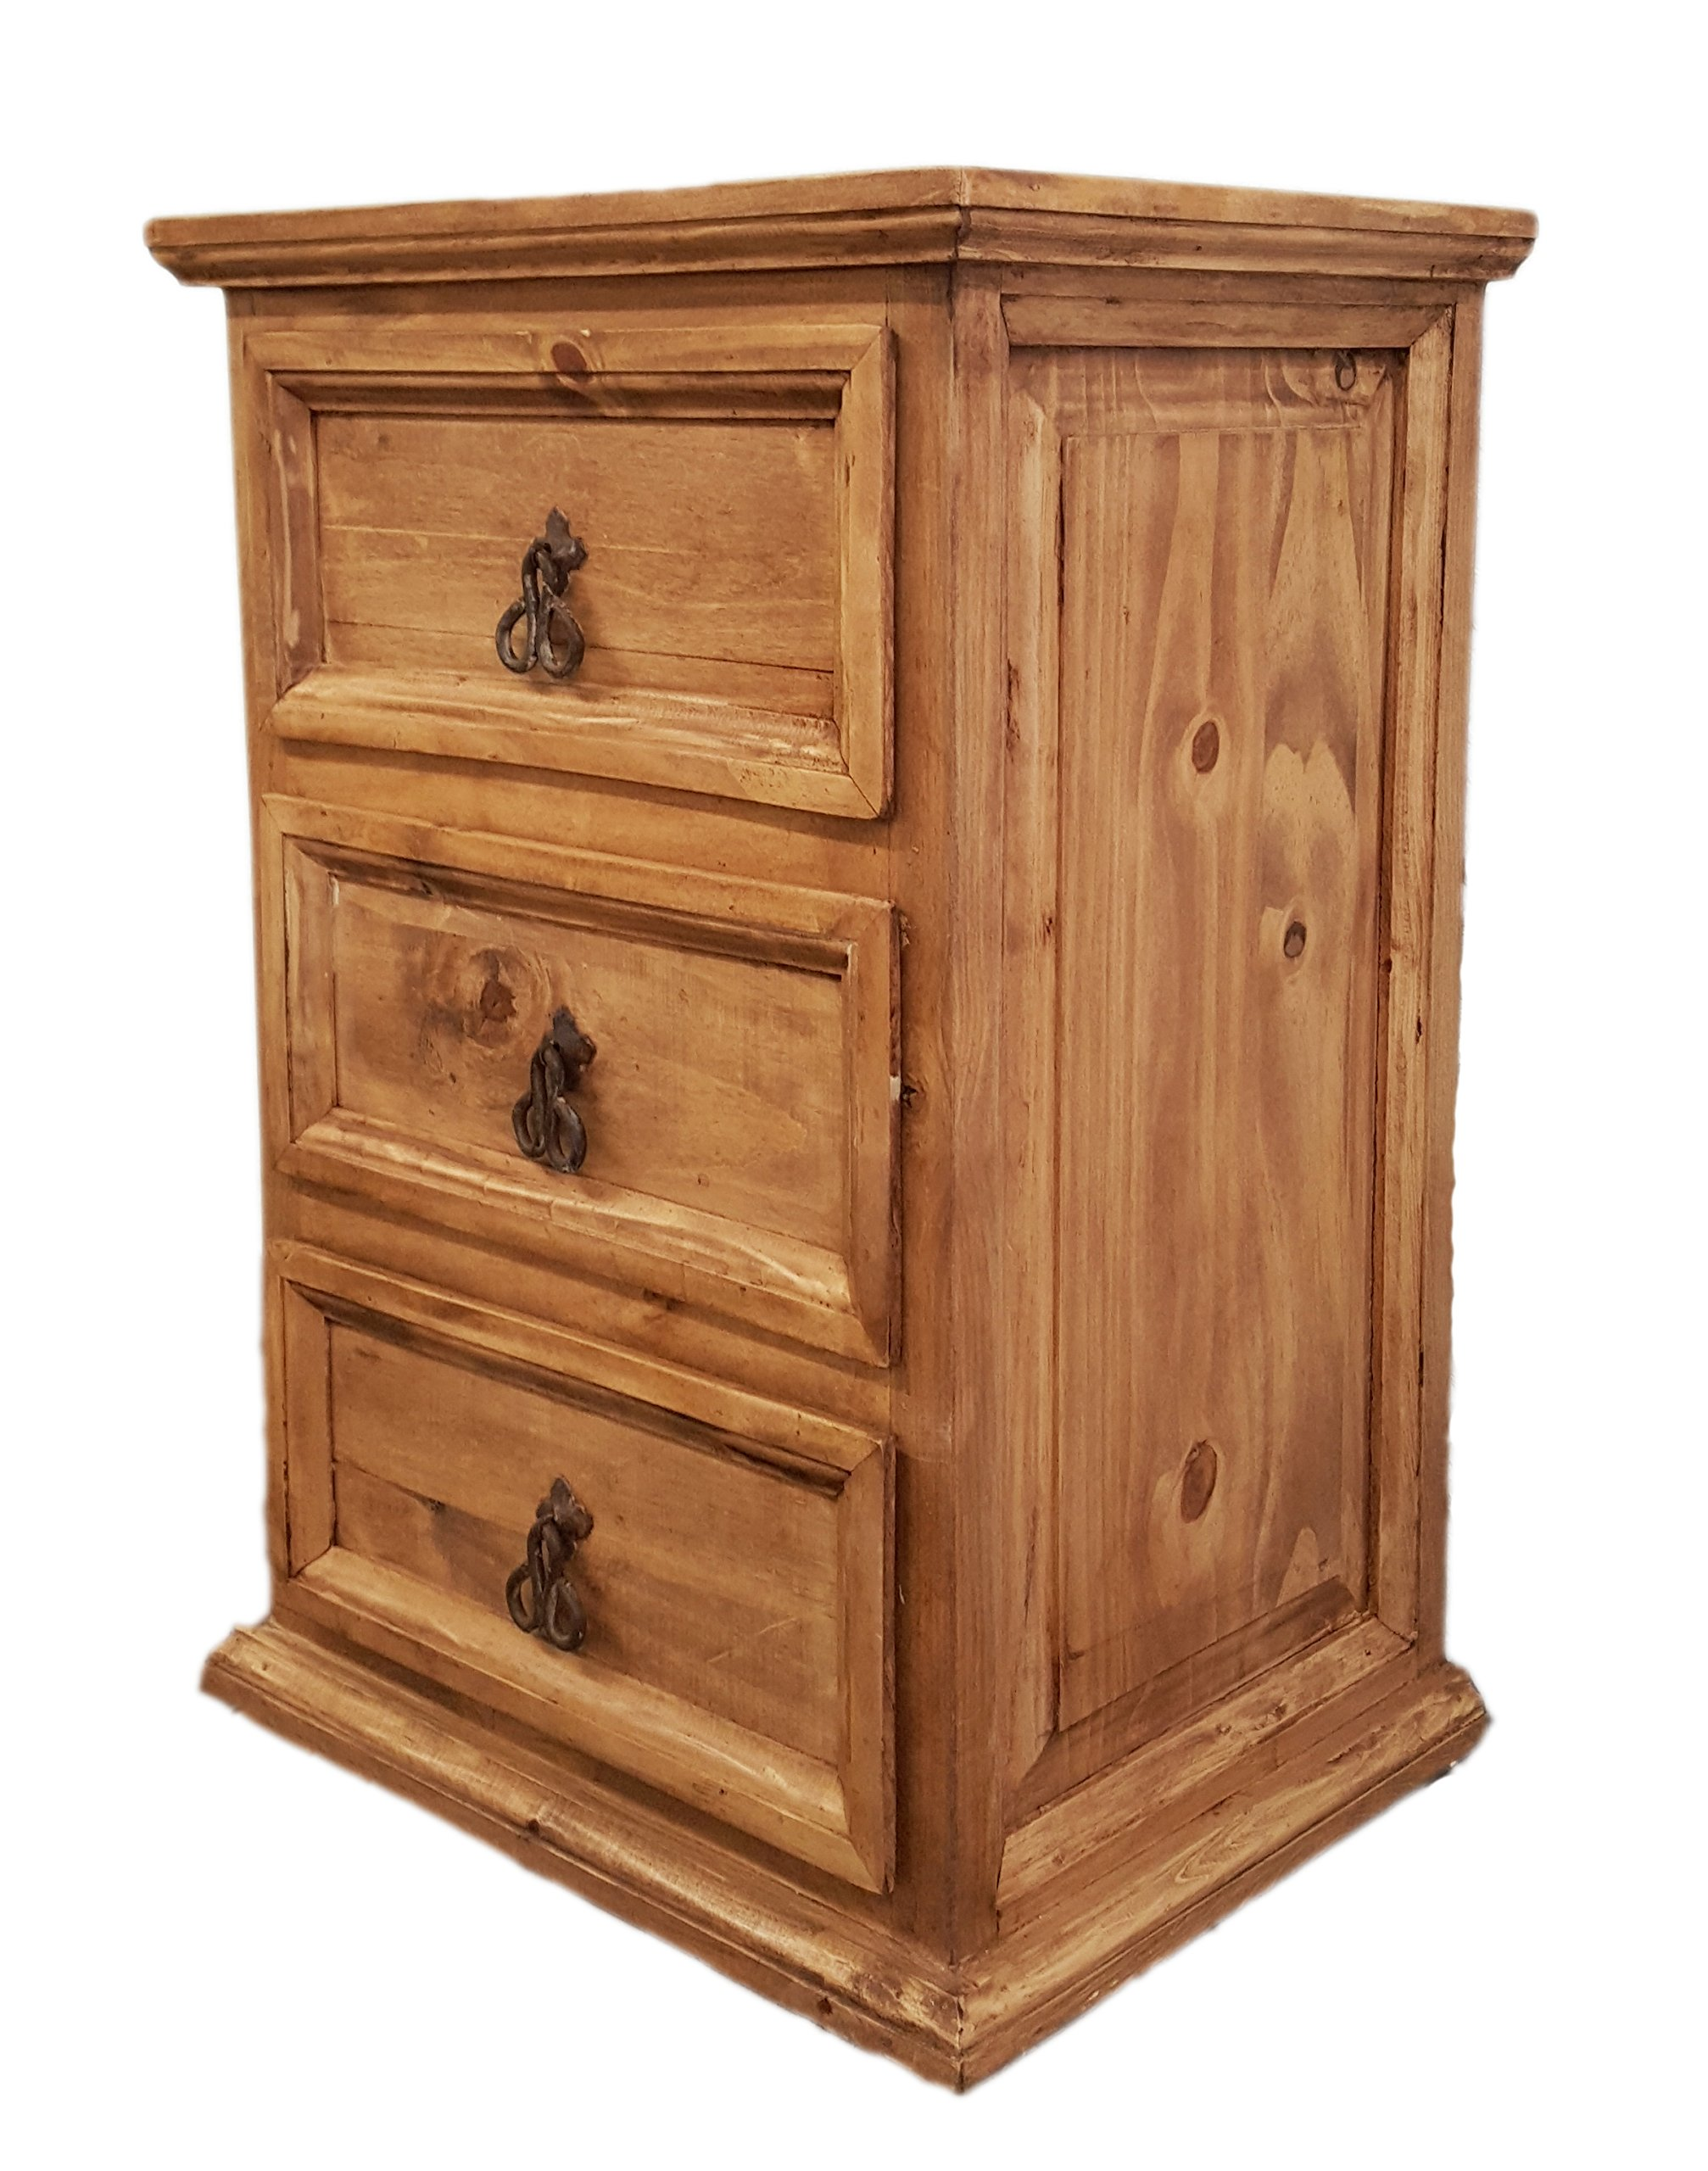 Rustics For Less LT-BUR-02 Santa Rita Nightstand, Short, Medium